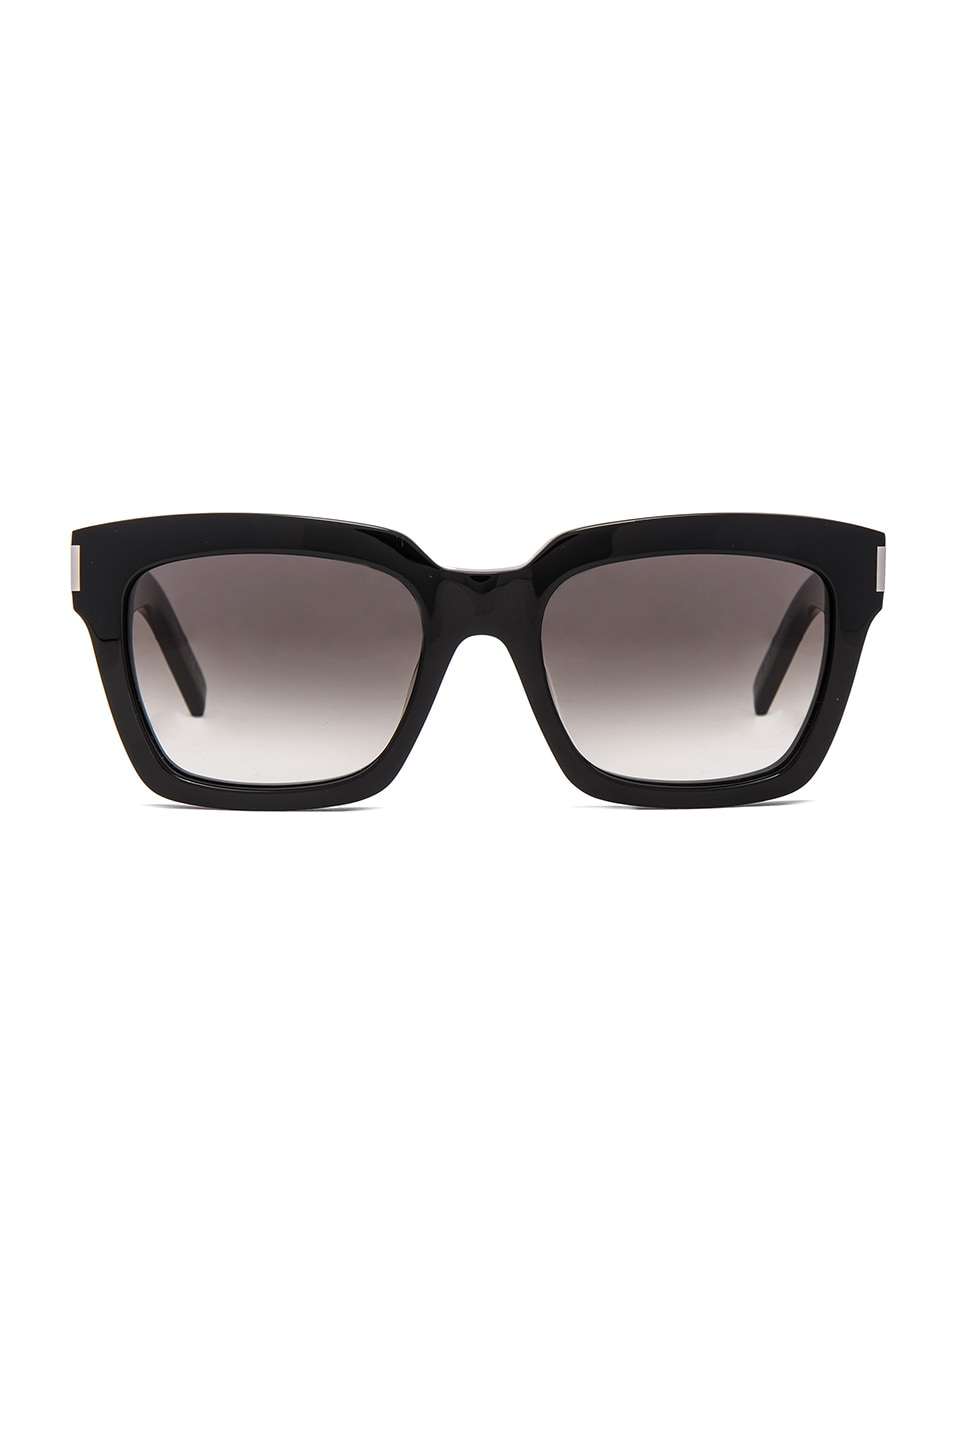 f957e52279d Grey Sunglasses Laurent Black In Fwrd Saint amp  Bold 1 qw0BnRa